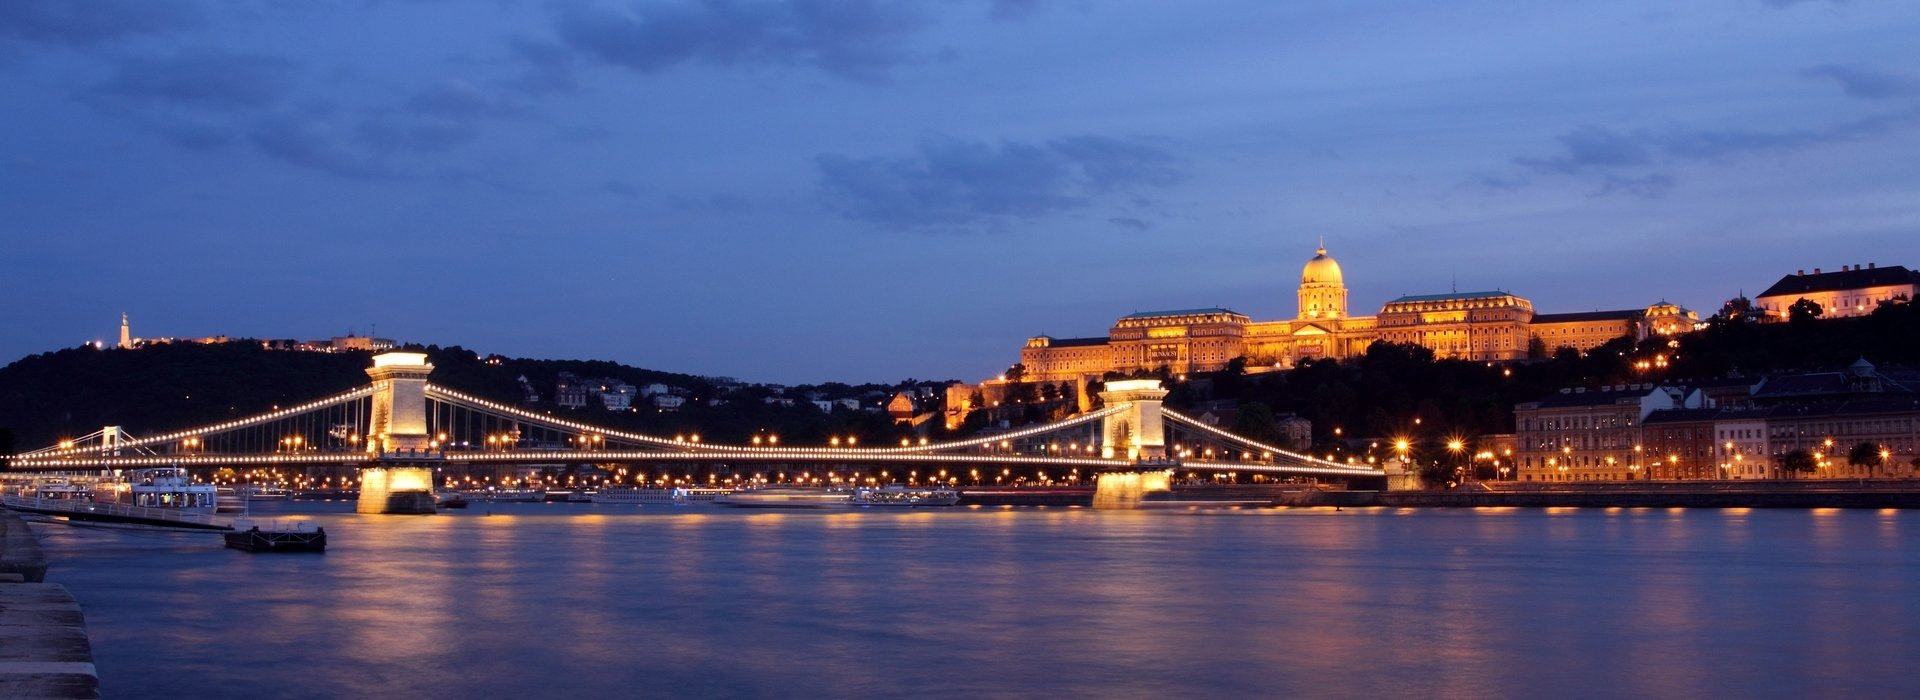 2 hour city tour in Budapest with waterbus